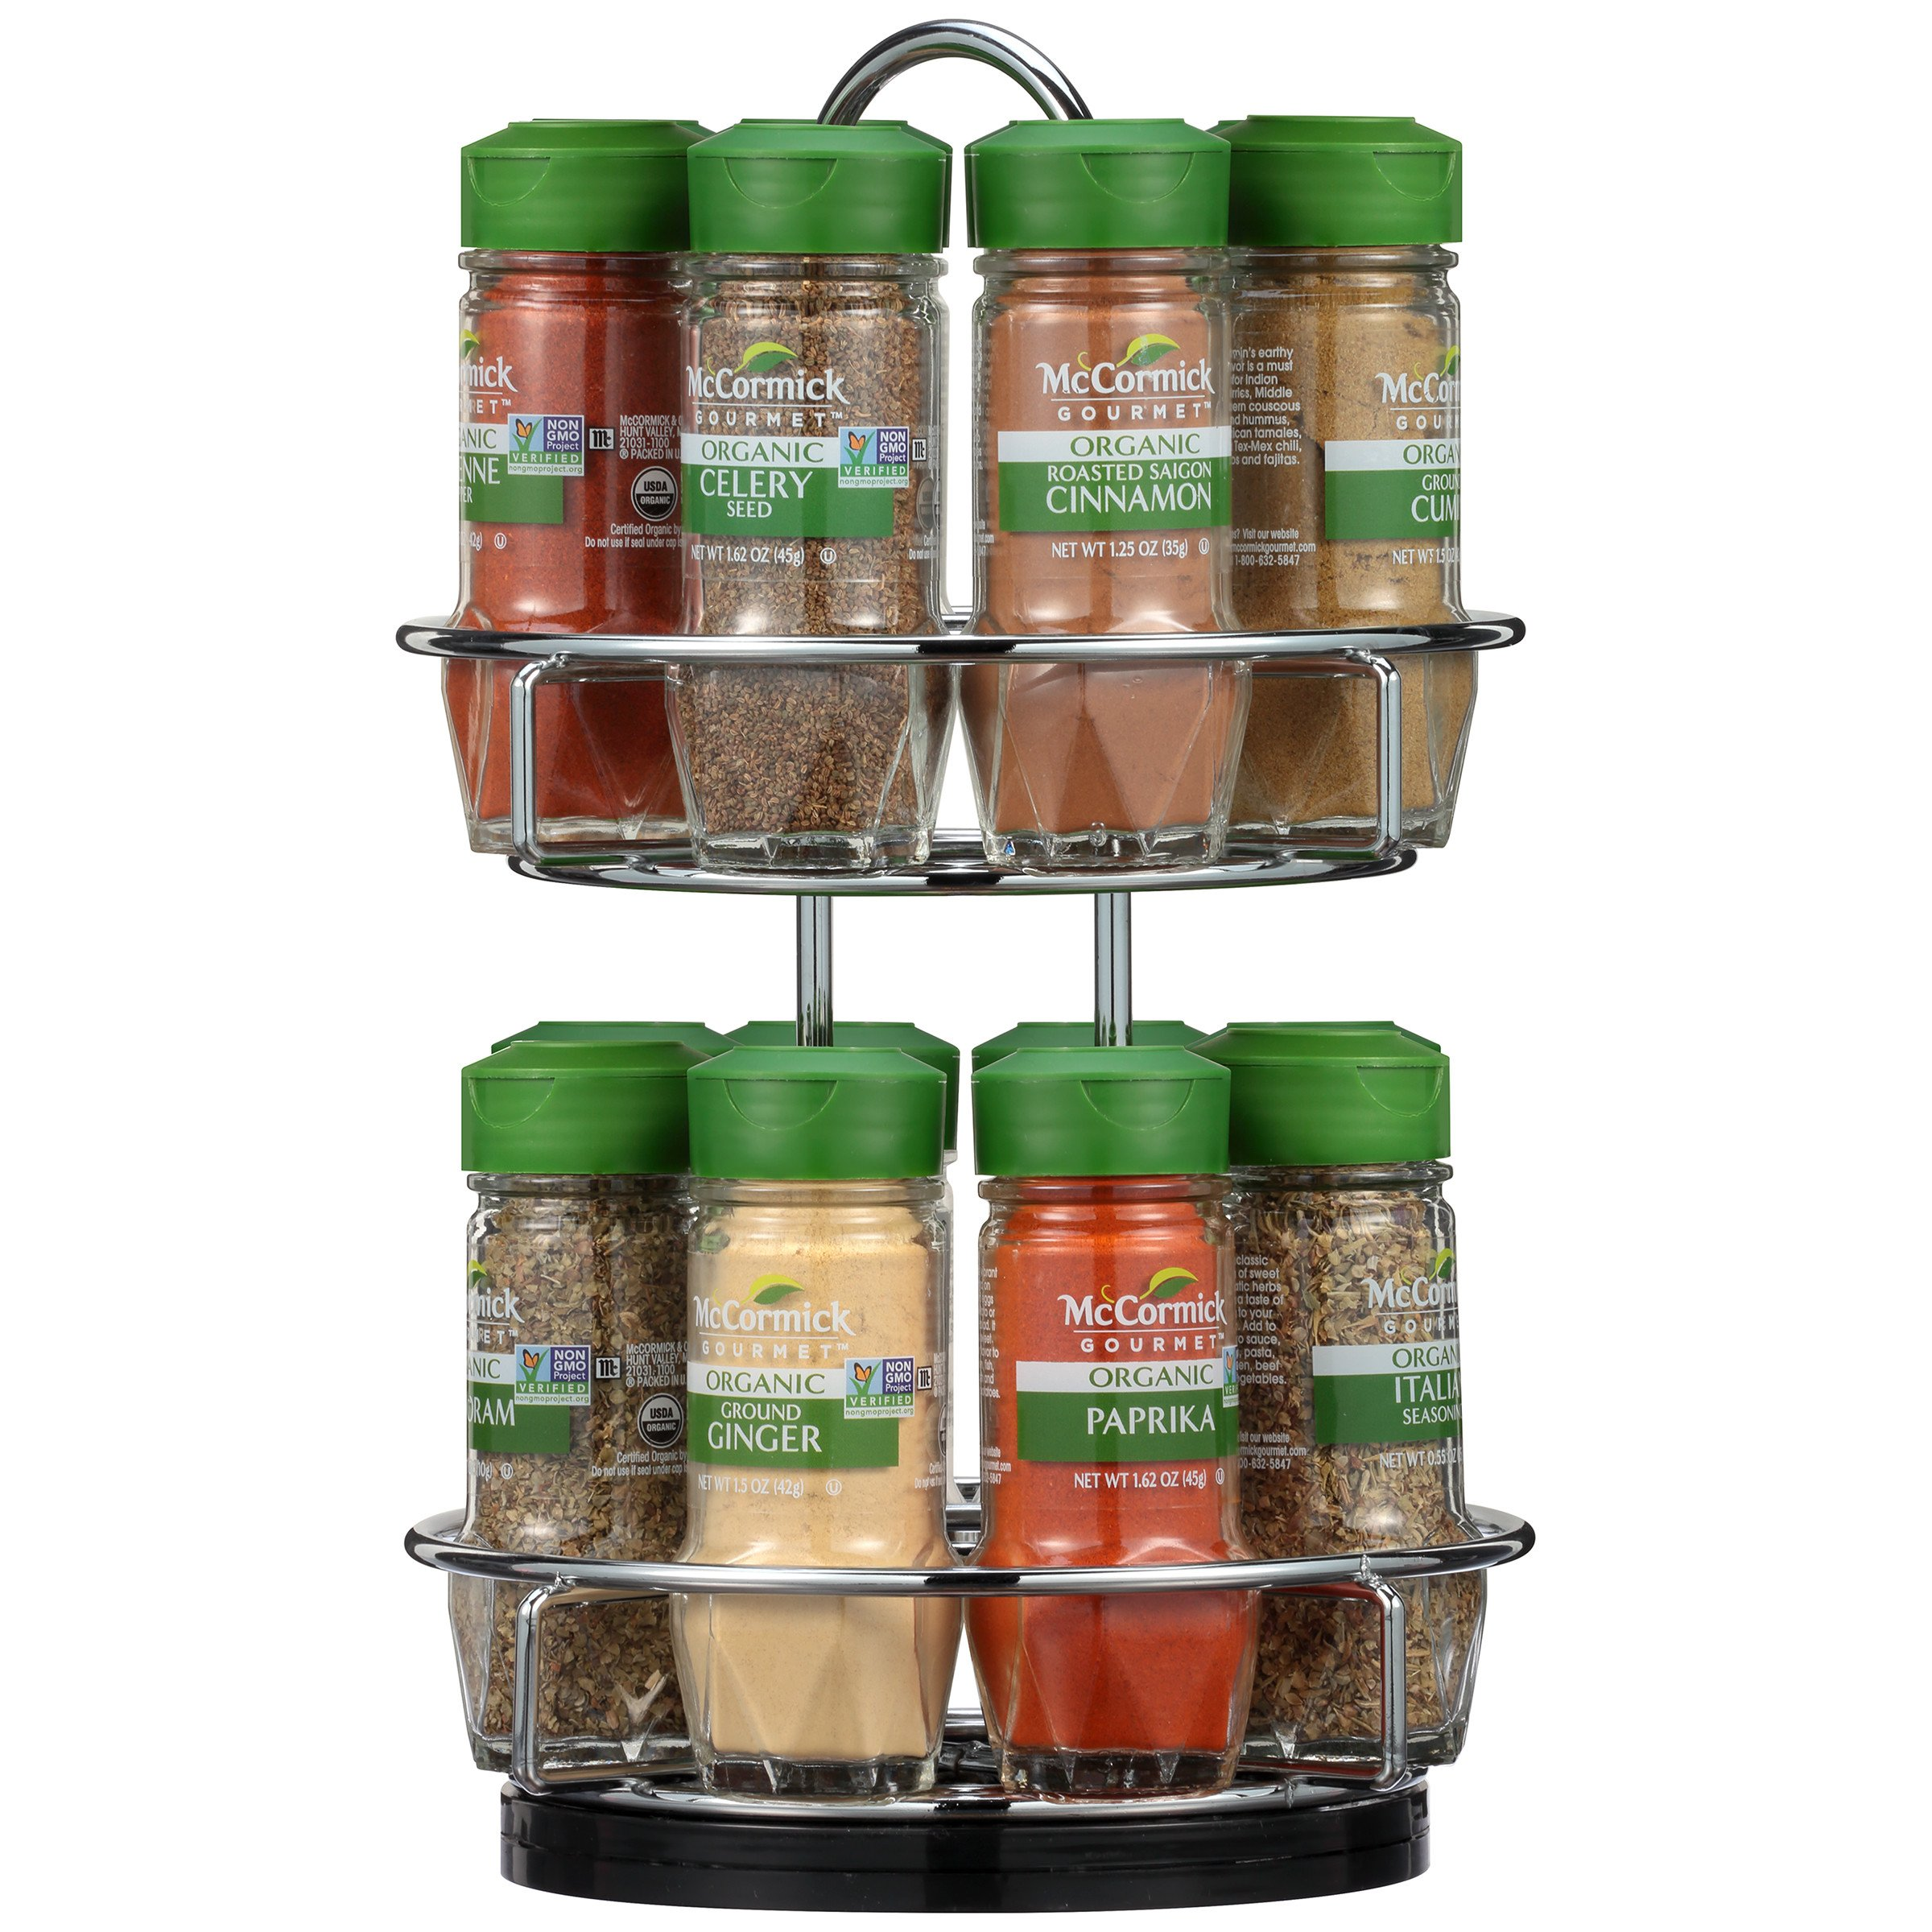 McCormick Gourmet Two Tier Chrome 16 Piece Organic Spice Rack, 15.41 oz by McCormick Gourmet